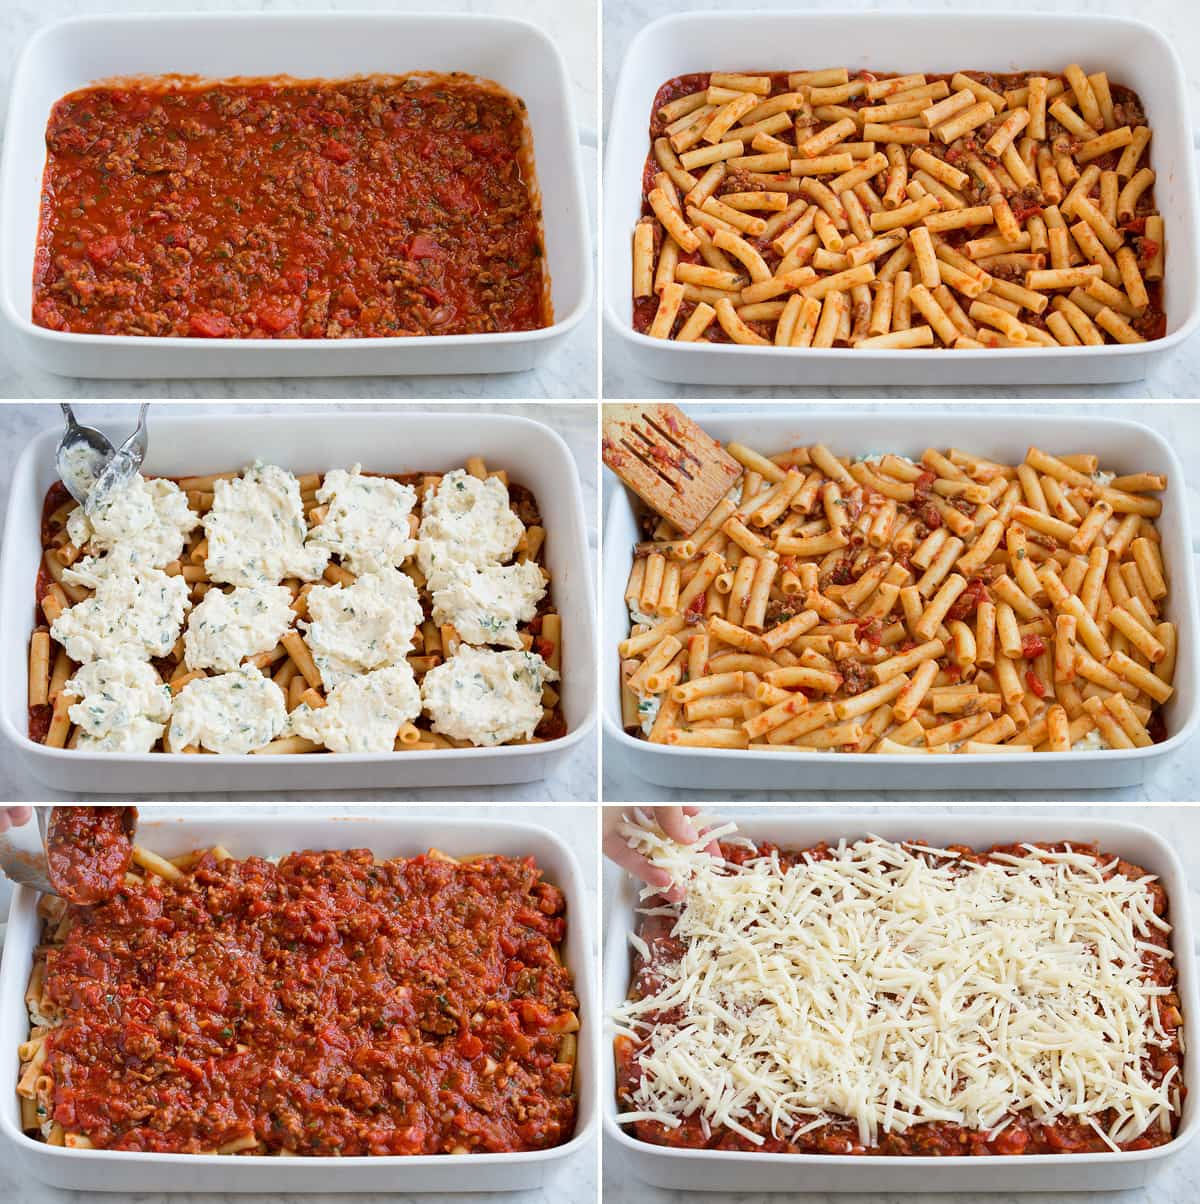 Image showing steps how to assemble baked ziti.